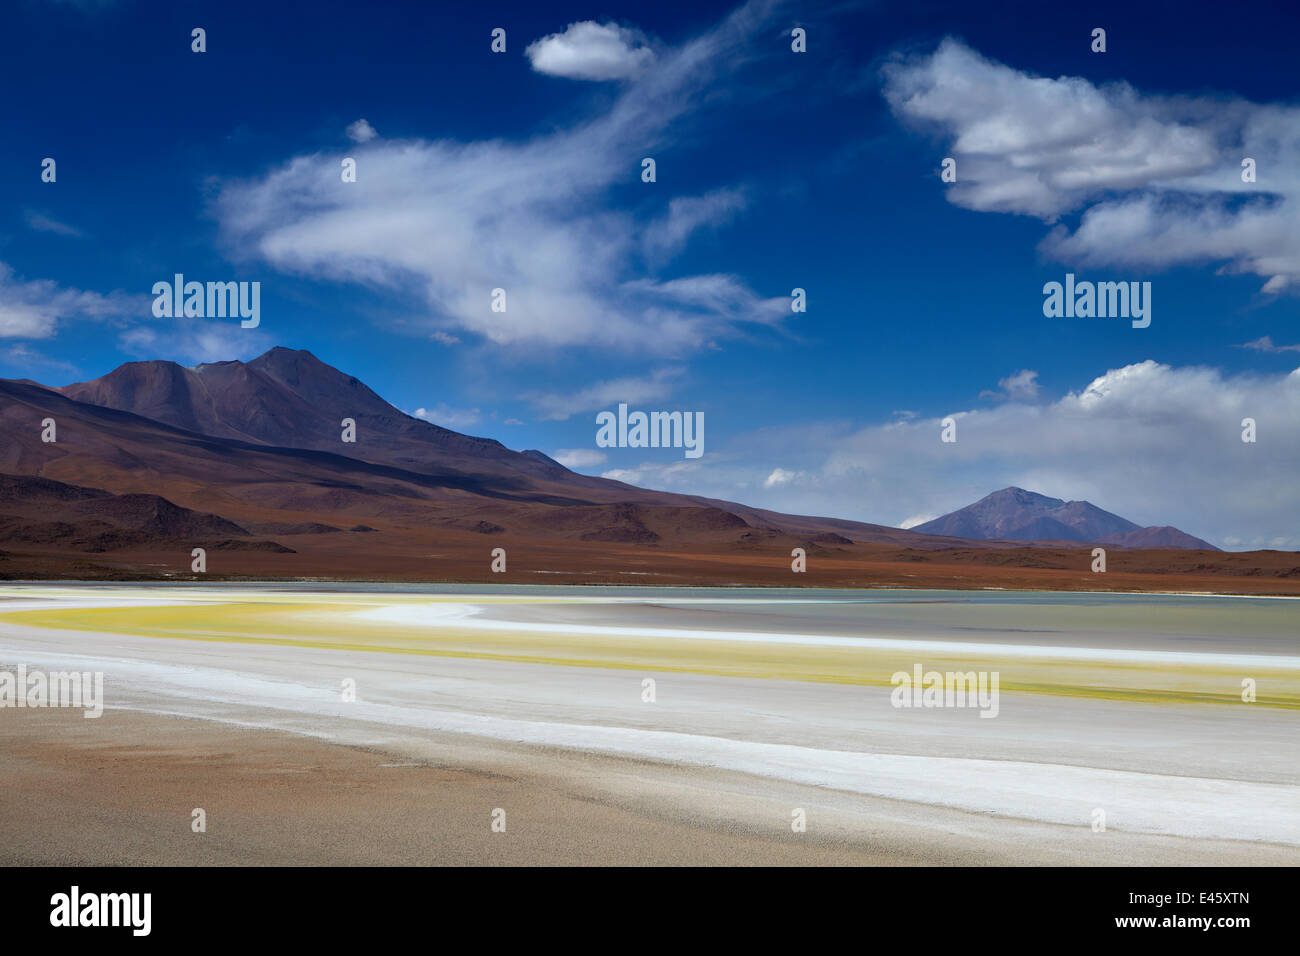 The remote region of high desert, altiplano and volcanoes near Tapaquilcha, Bolivia, December 2009 - Stock Image